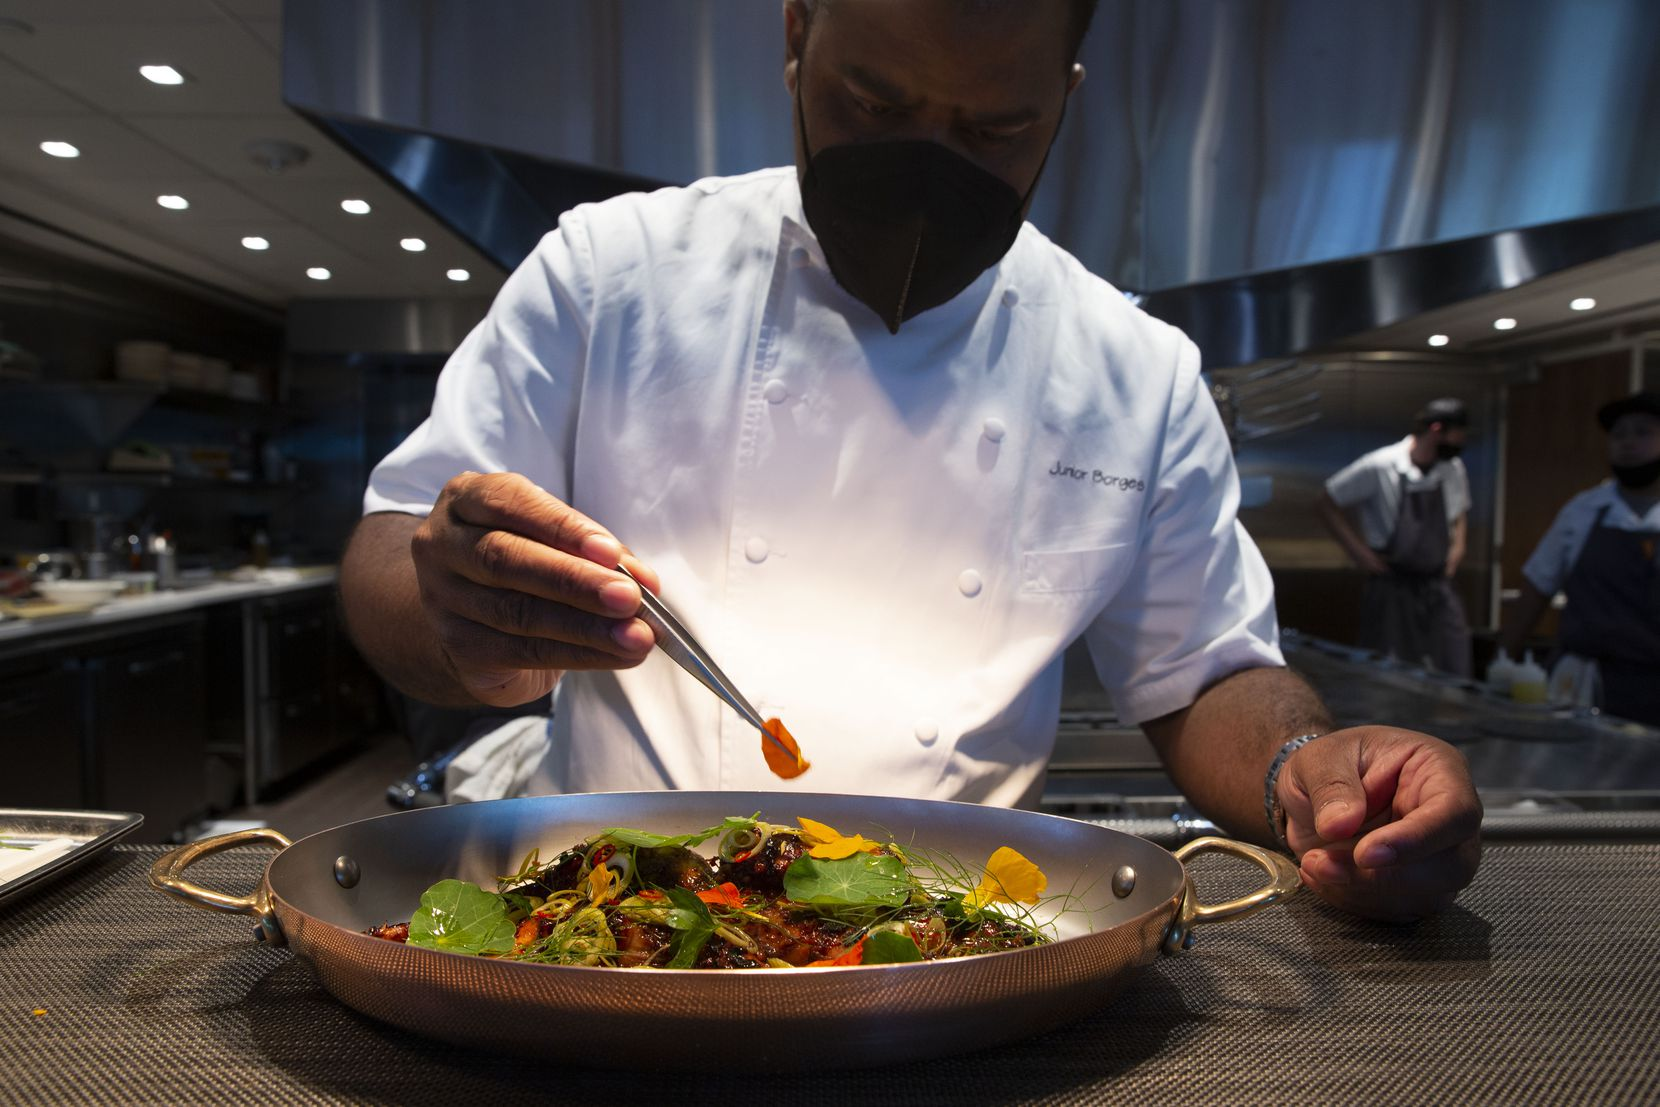 Chef Junior Borges puts the final touches on the grilled octopus at Meridian restaurant, in The Village area of Dallas.